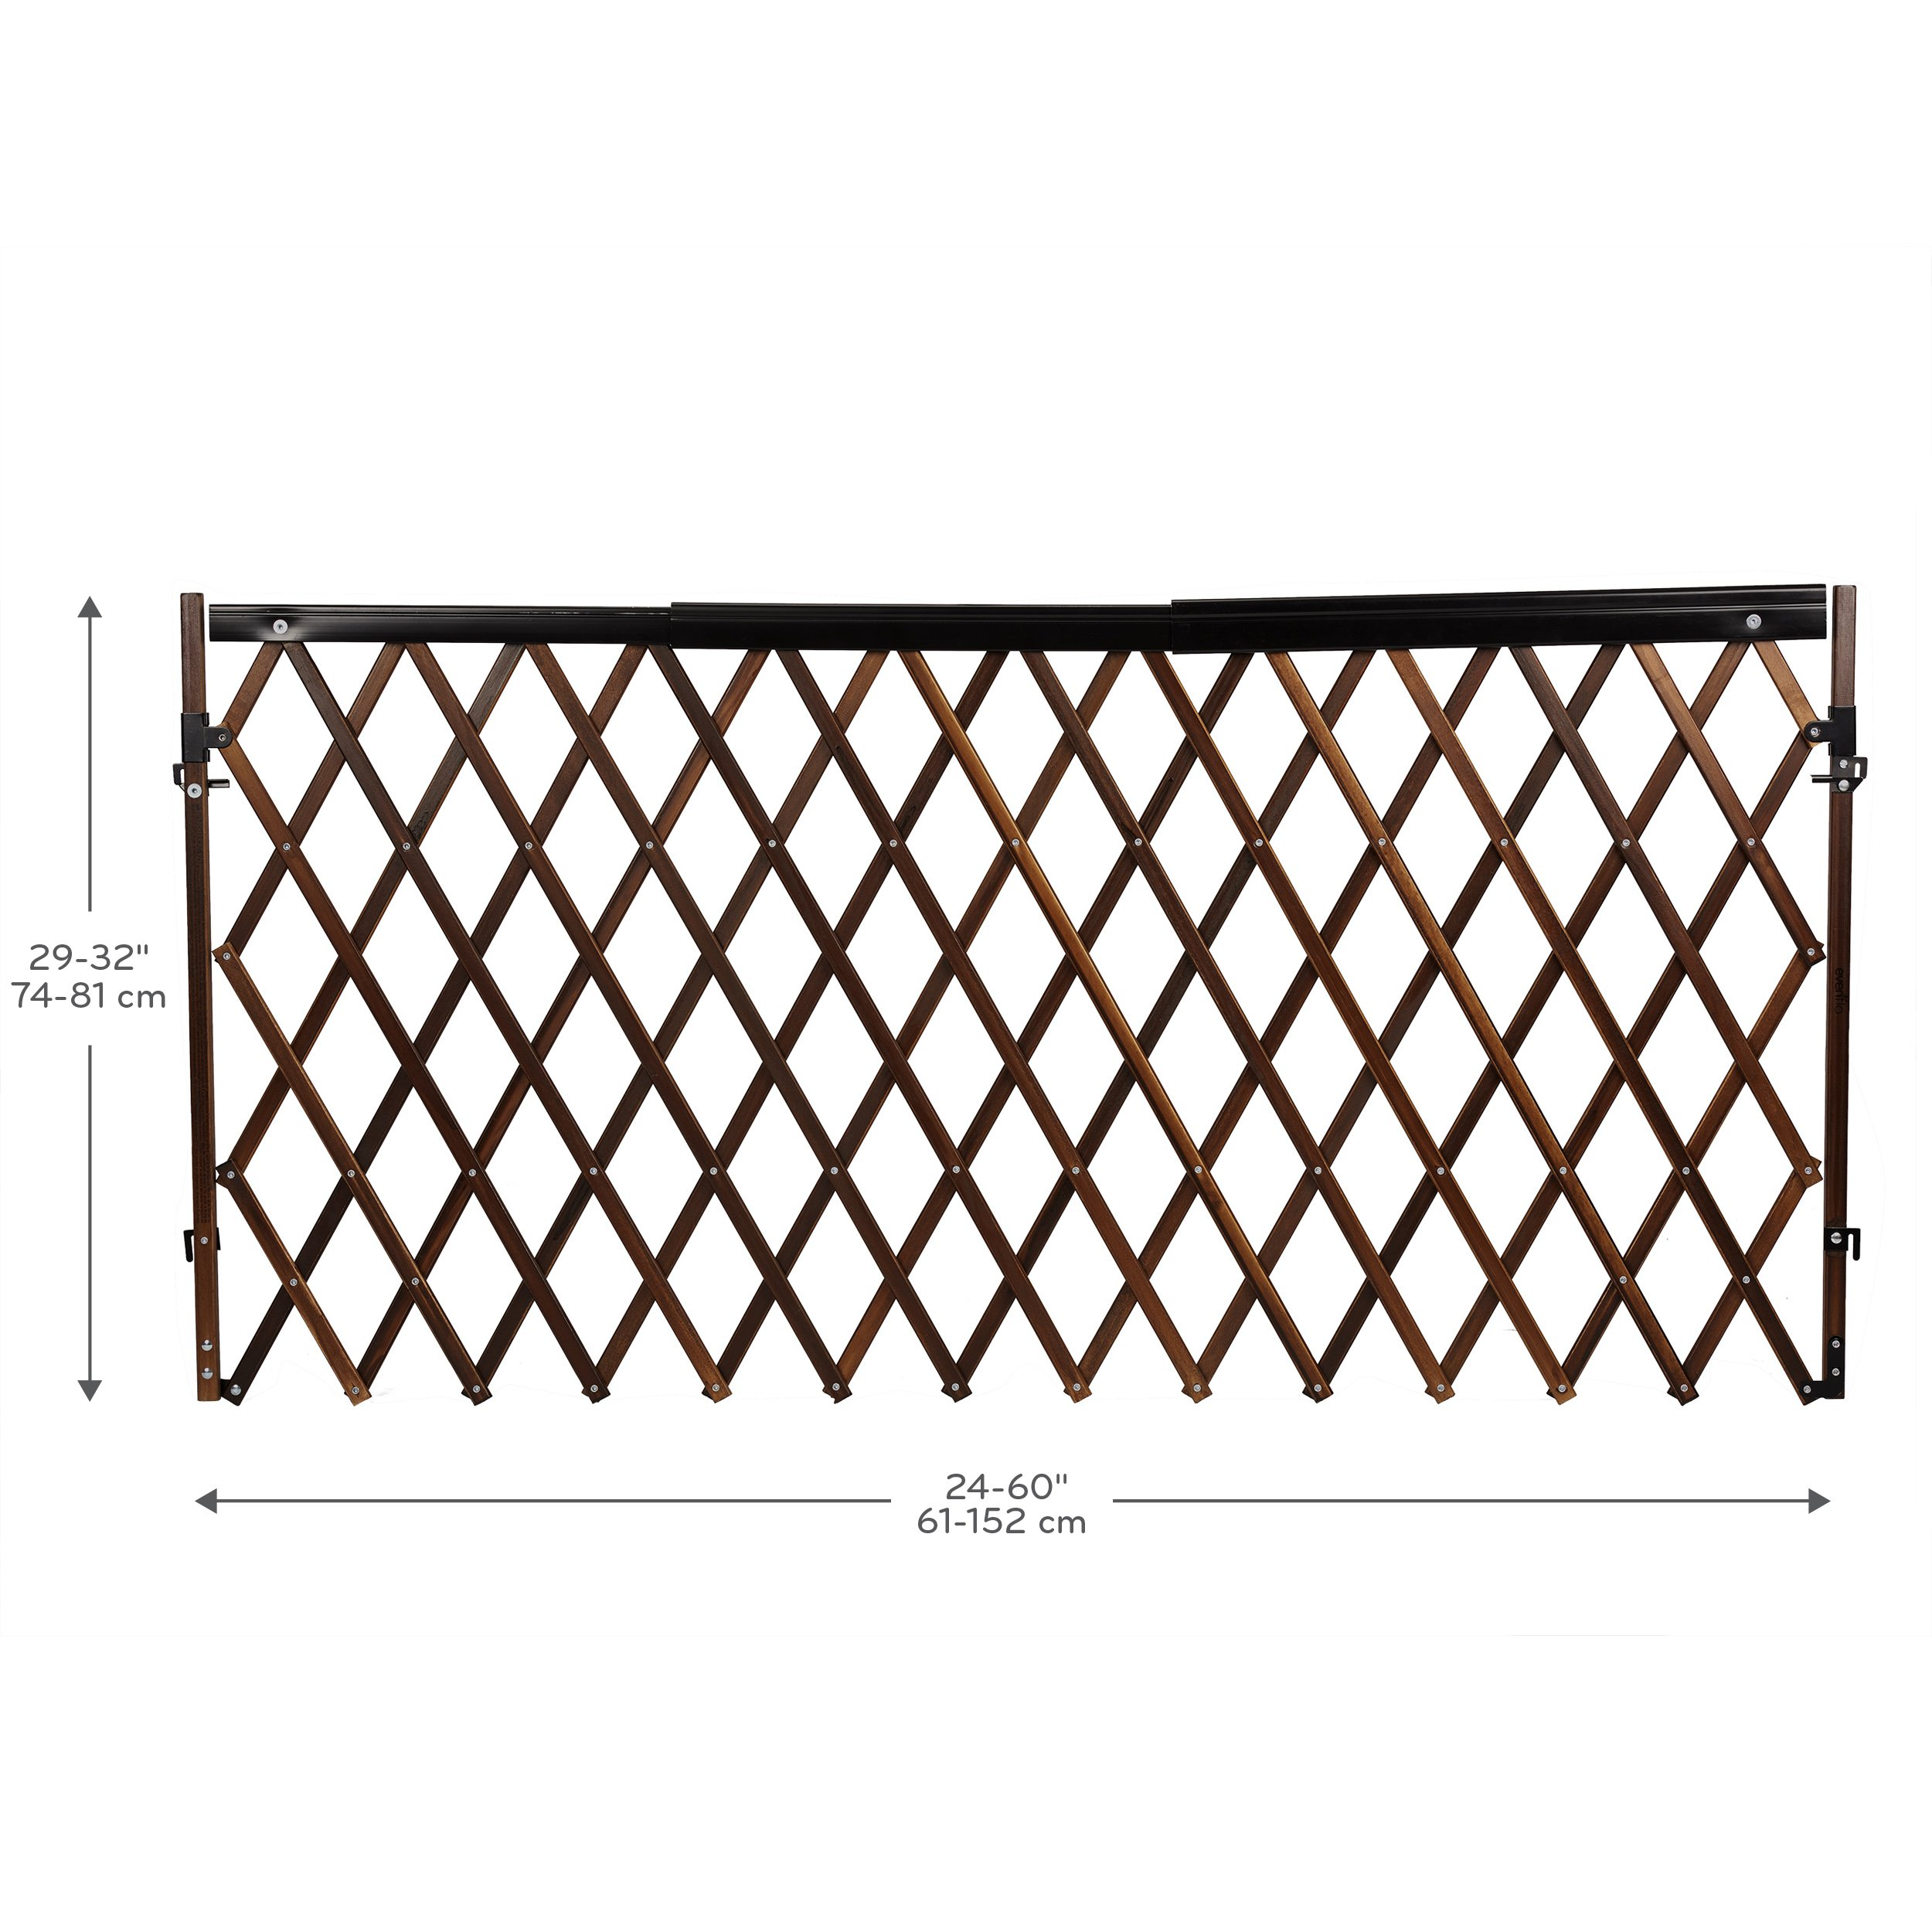 Evenflo Home Decor Wood Swing Gate: Evenflo Expansion Swing Wide Gate Extra-Wide Gate